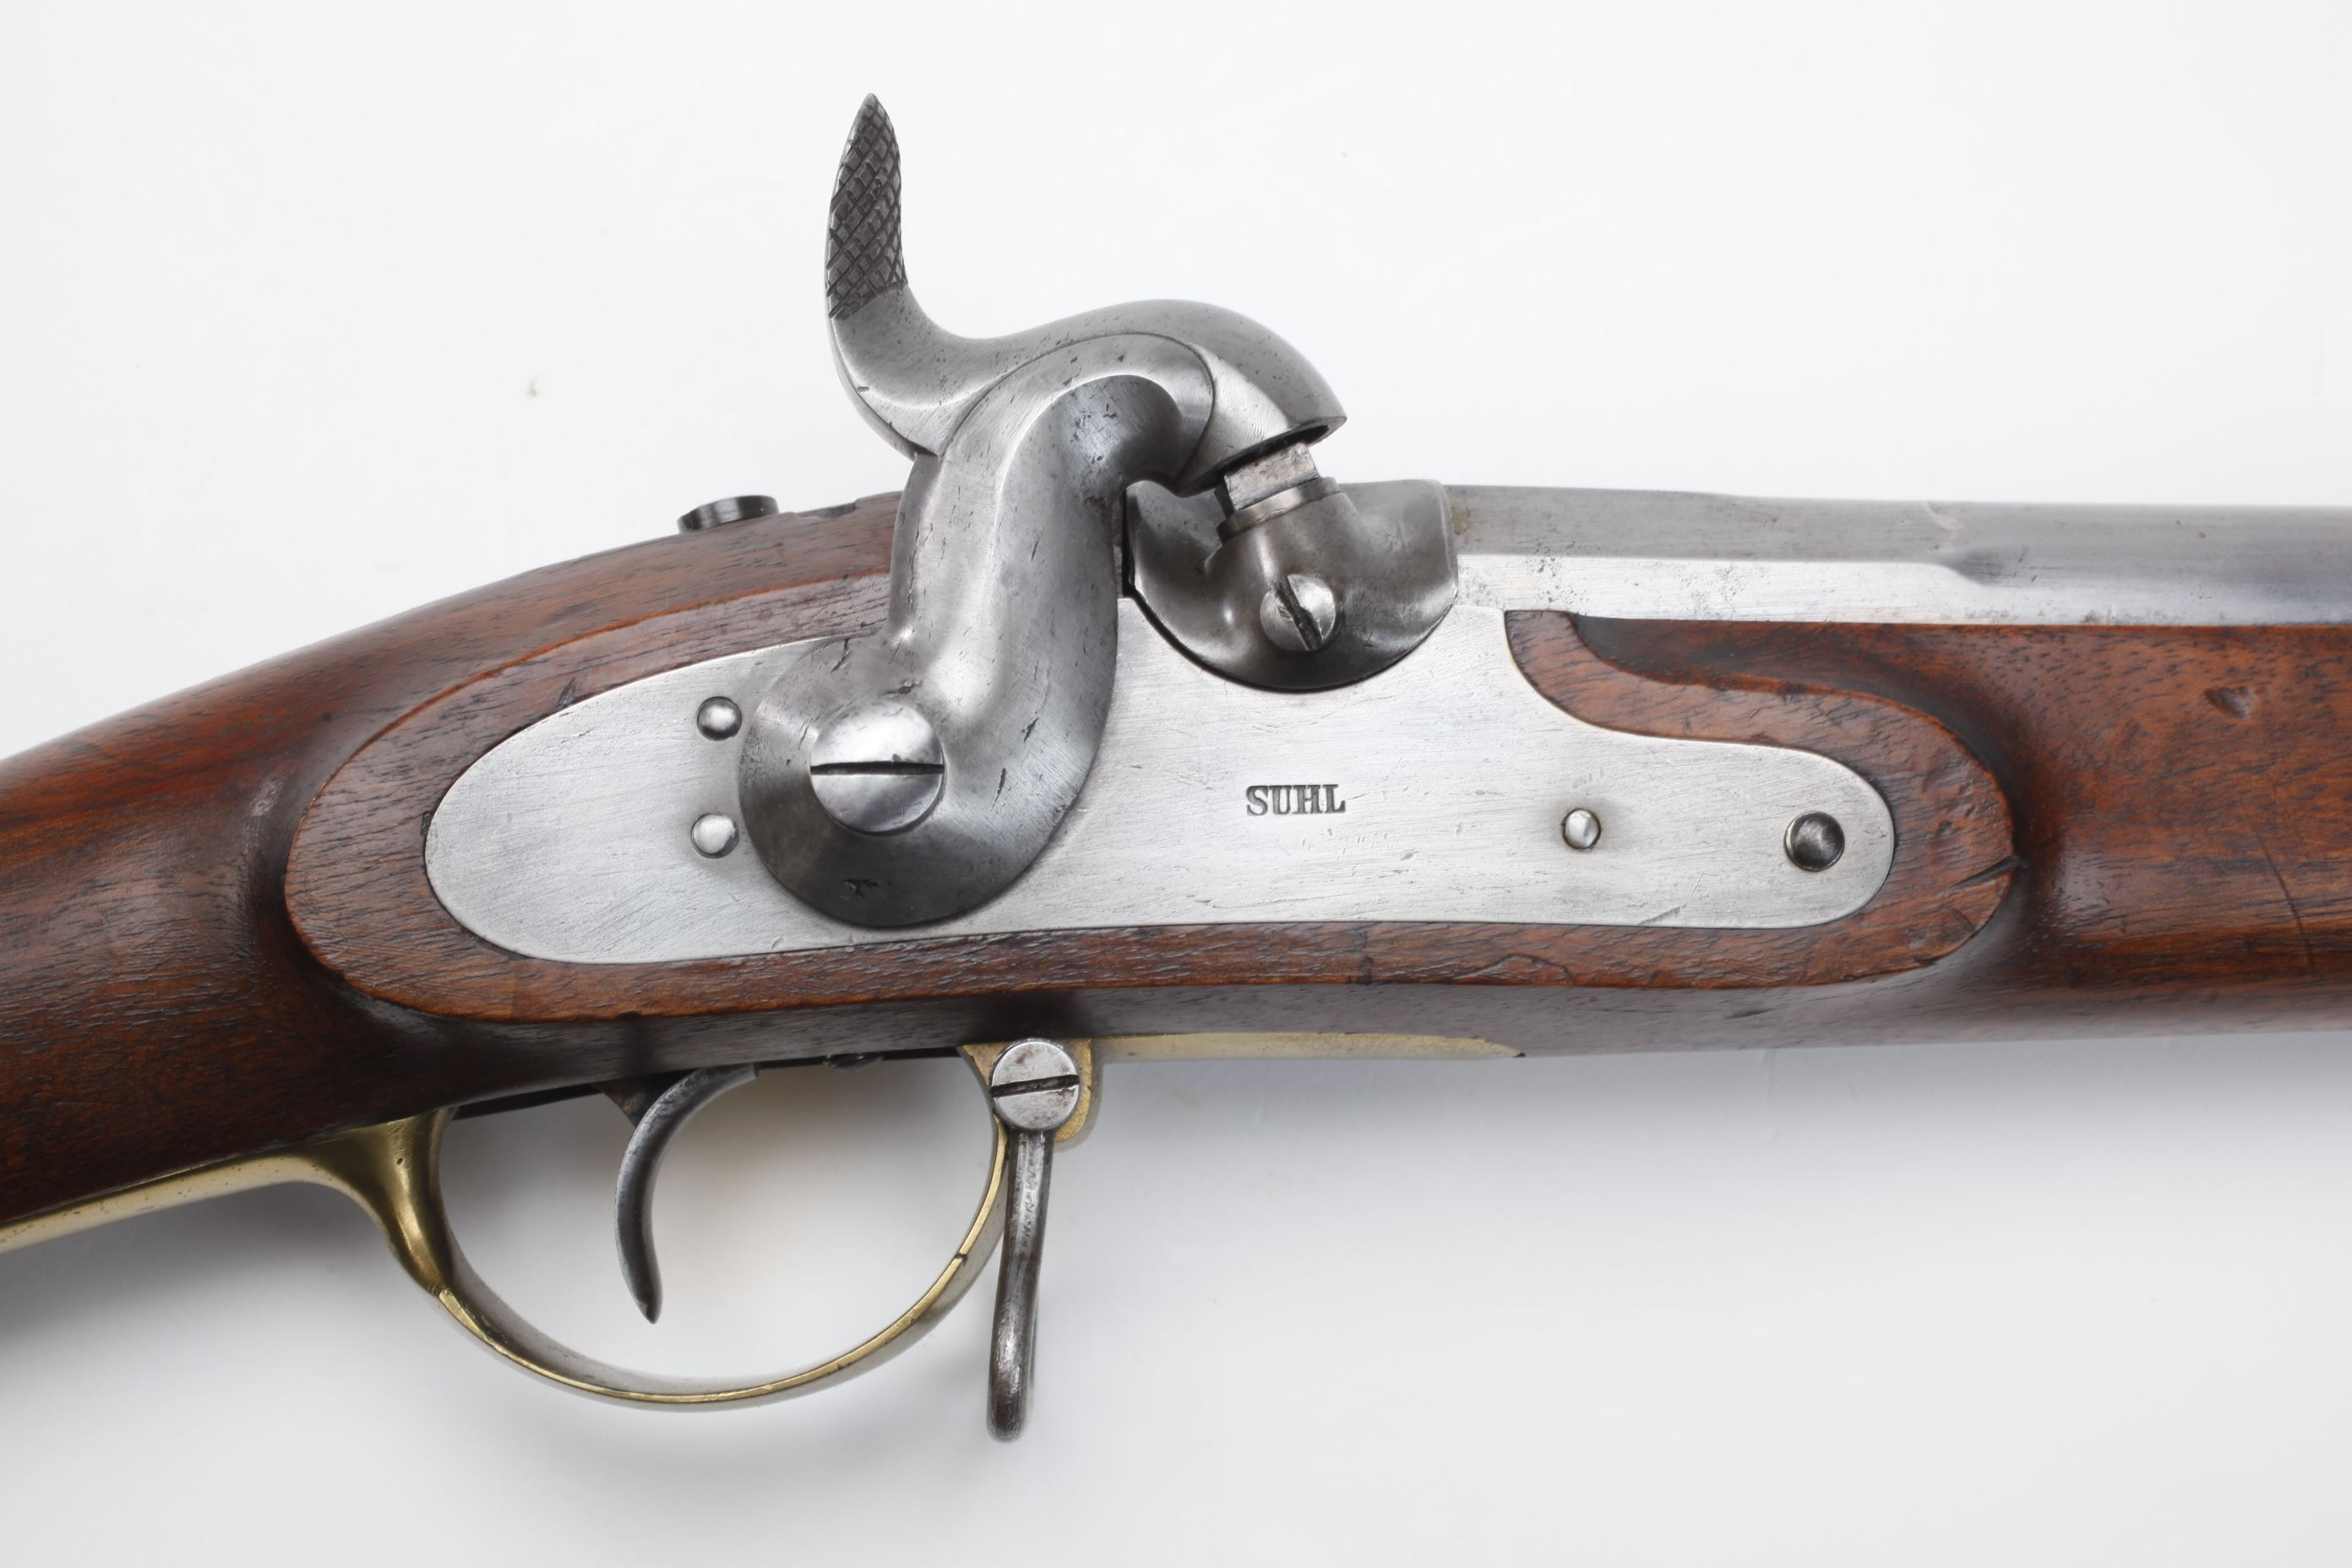 Suhl Model 1839 Muzzleloading Percussion Musket